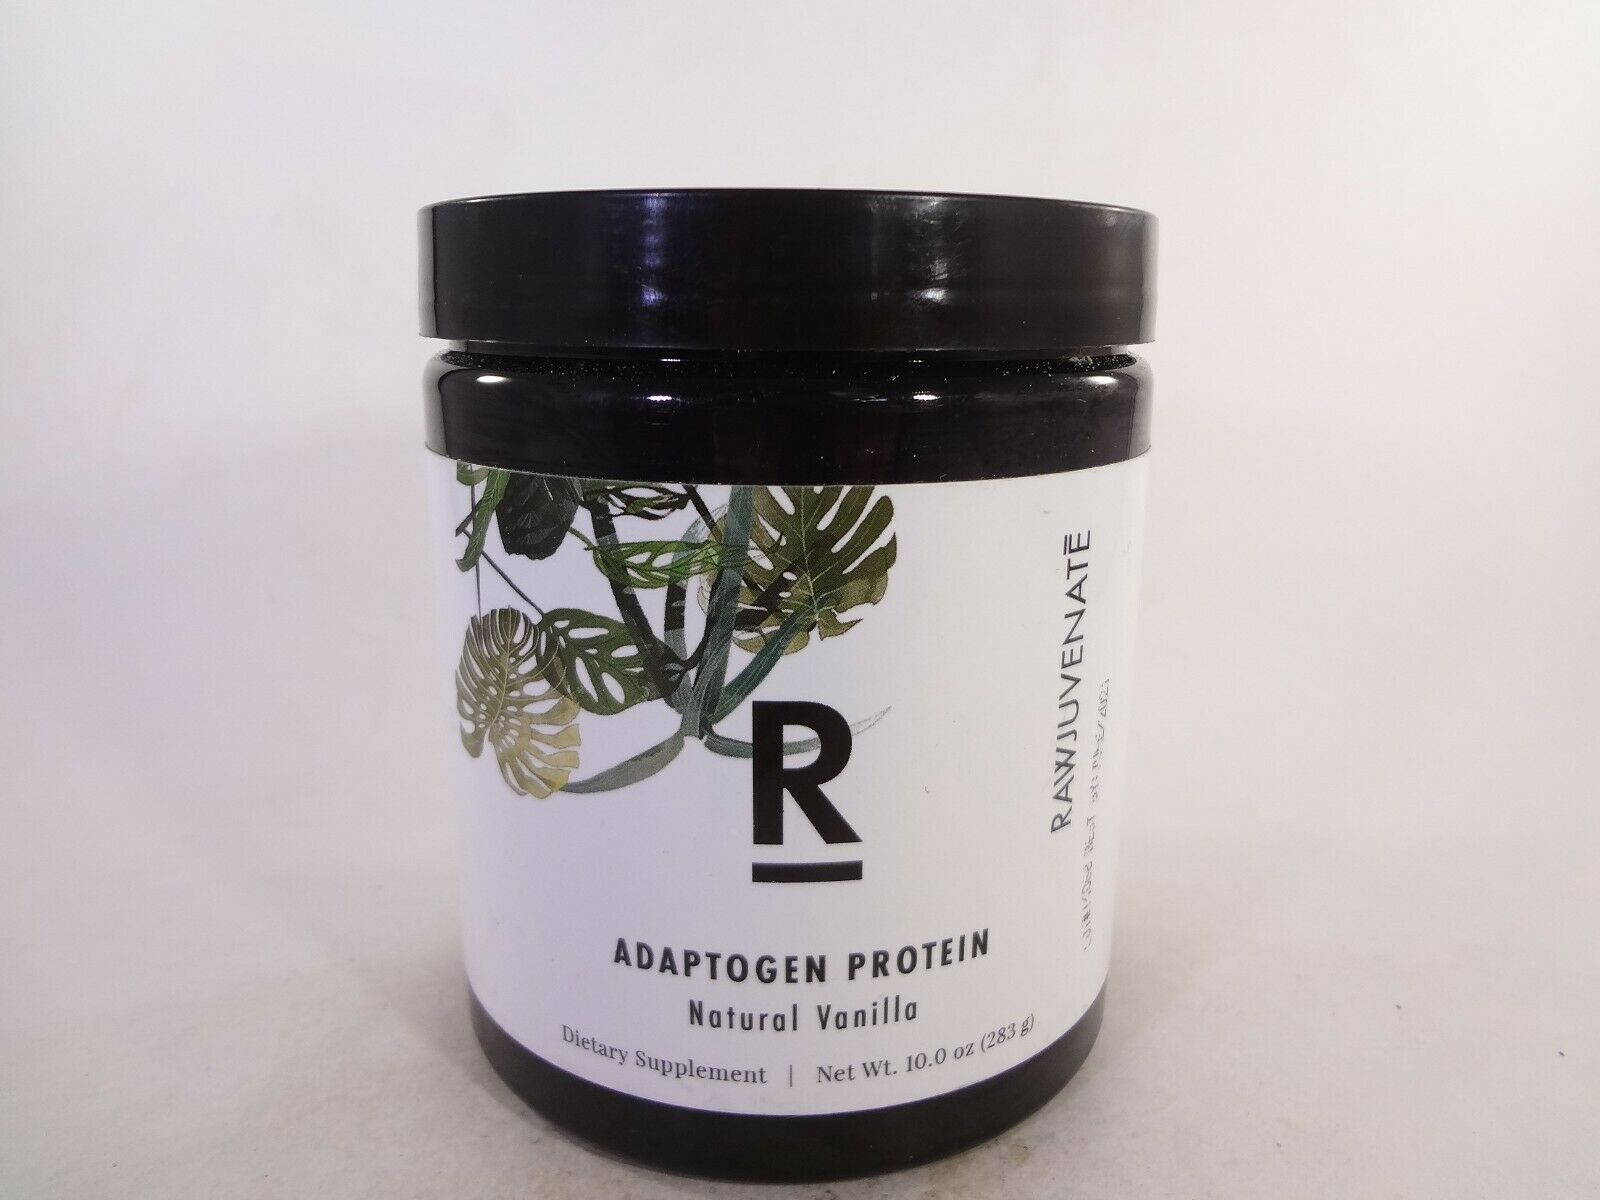 Rawjuvenate Adaptogen Protein Natural Vanilla 10.0 oz (283g) [VS-R]